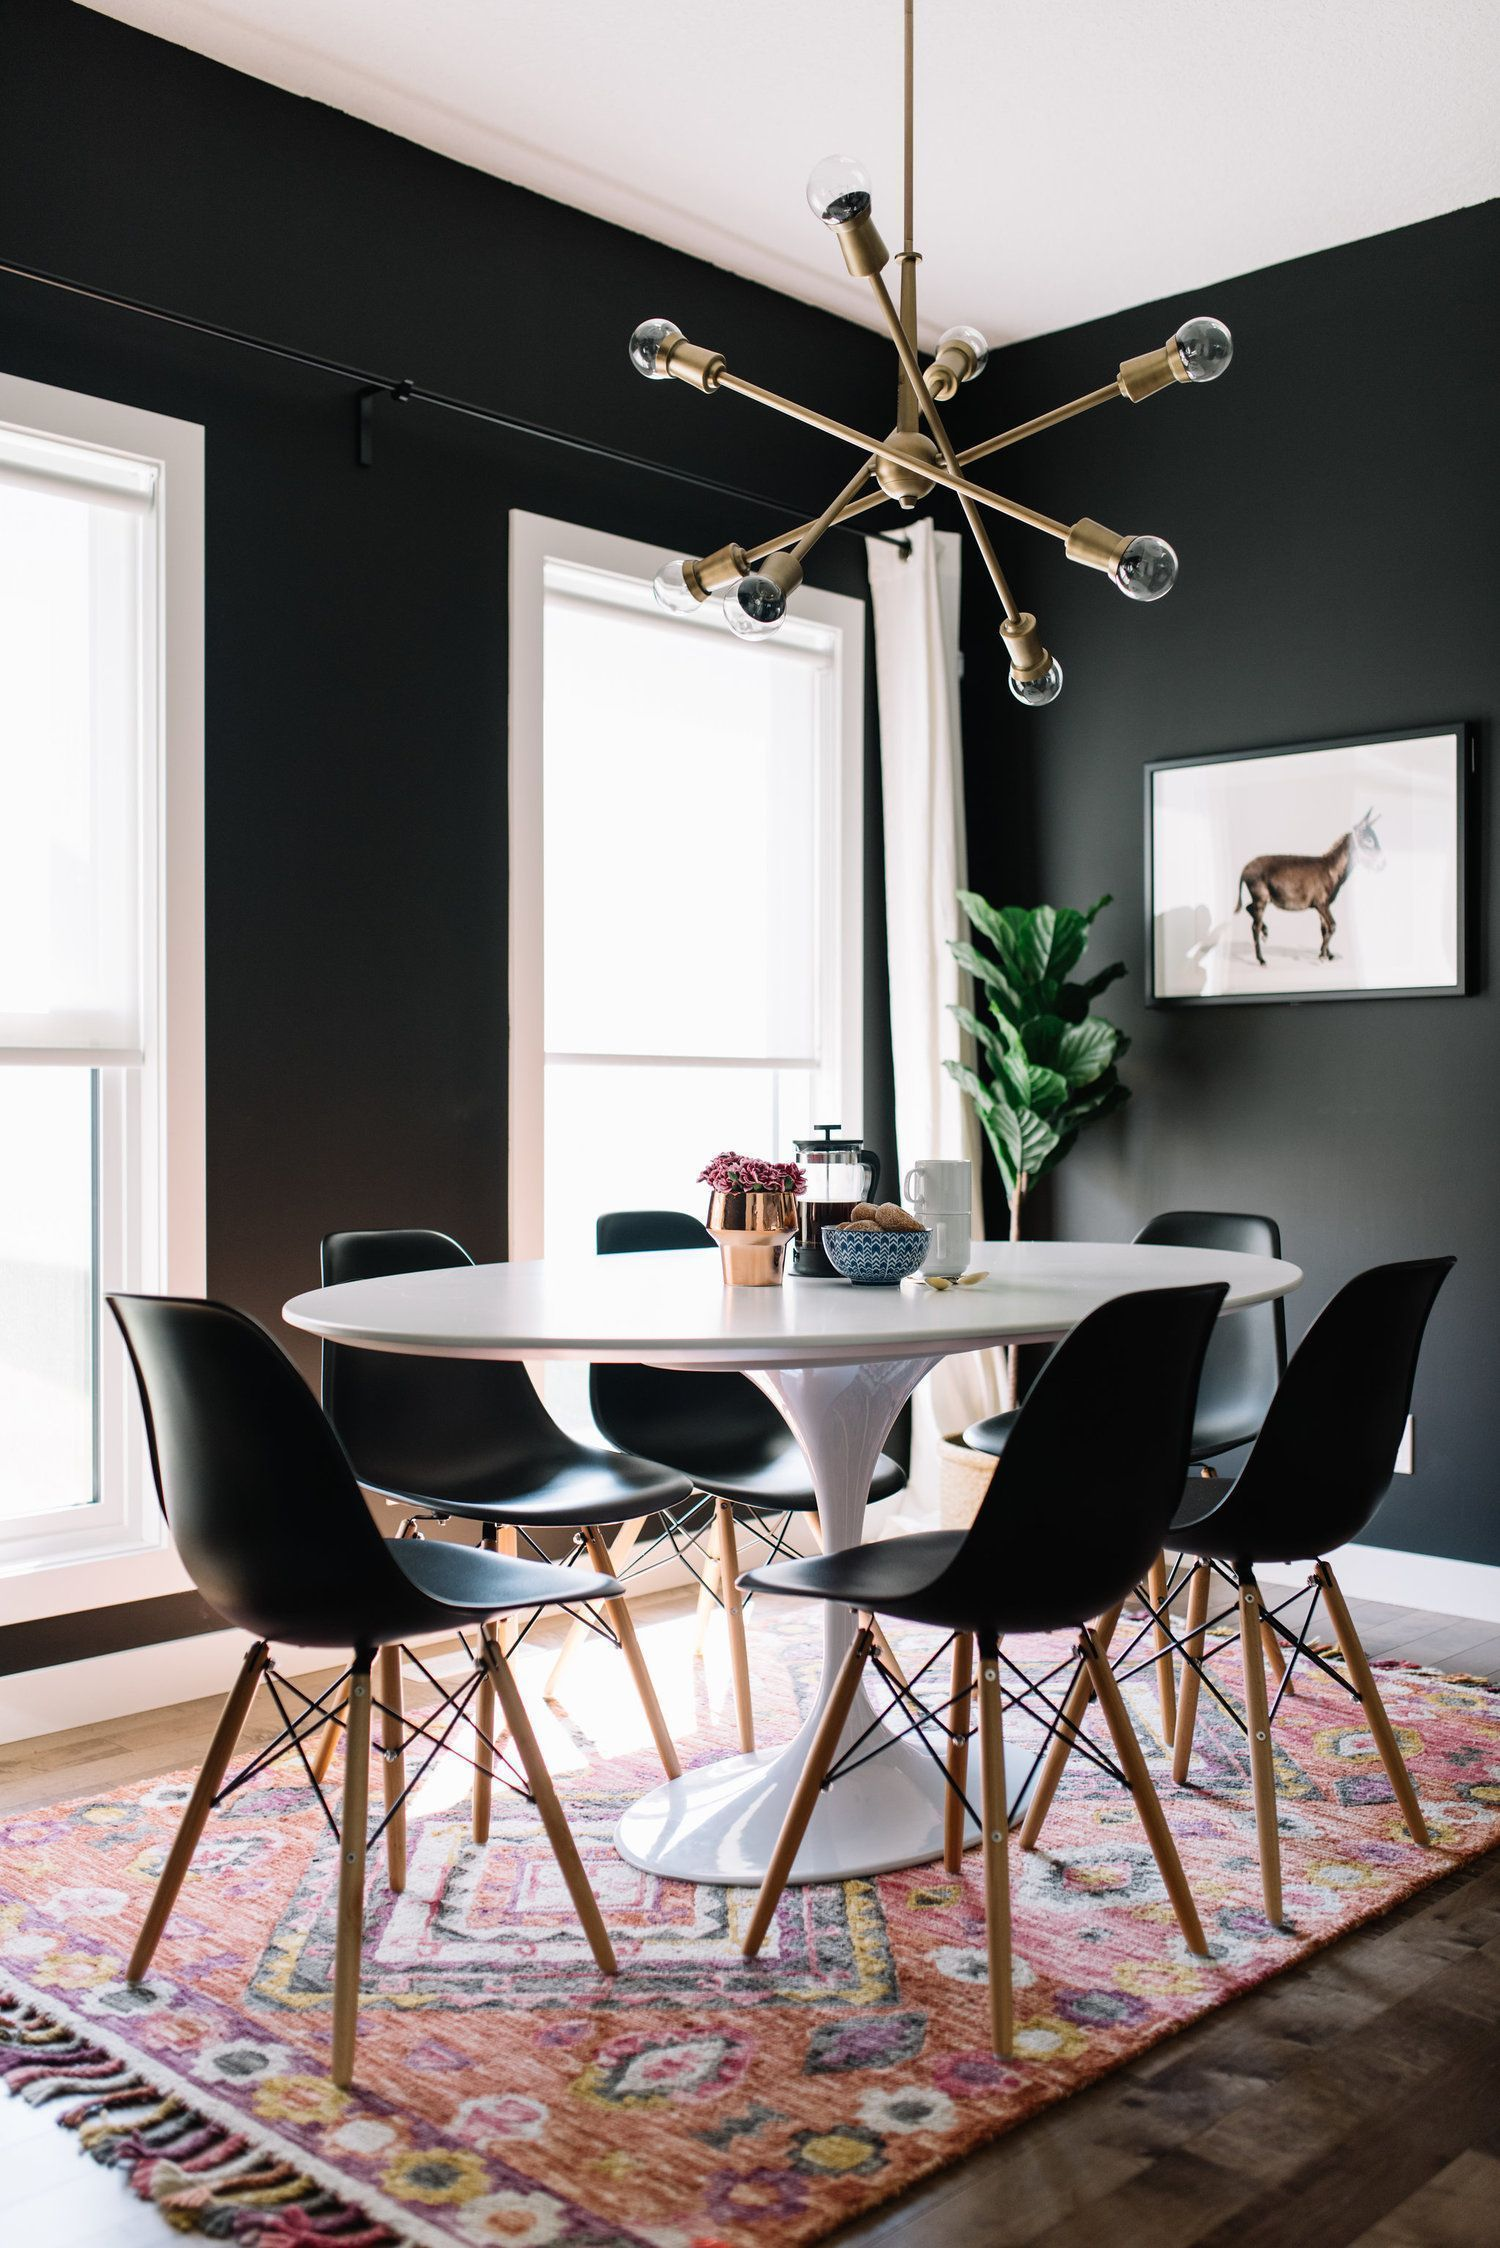 Amazing 37 Best Dining Room Design Ideas For Your Dream House Http Guru Mid Century Modern Dining Room Mid Century Dining Room Mid Century Modern Living Room,What Color Should I Paint My Ceiling